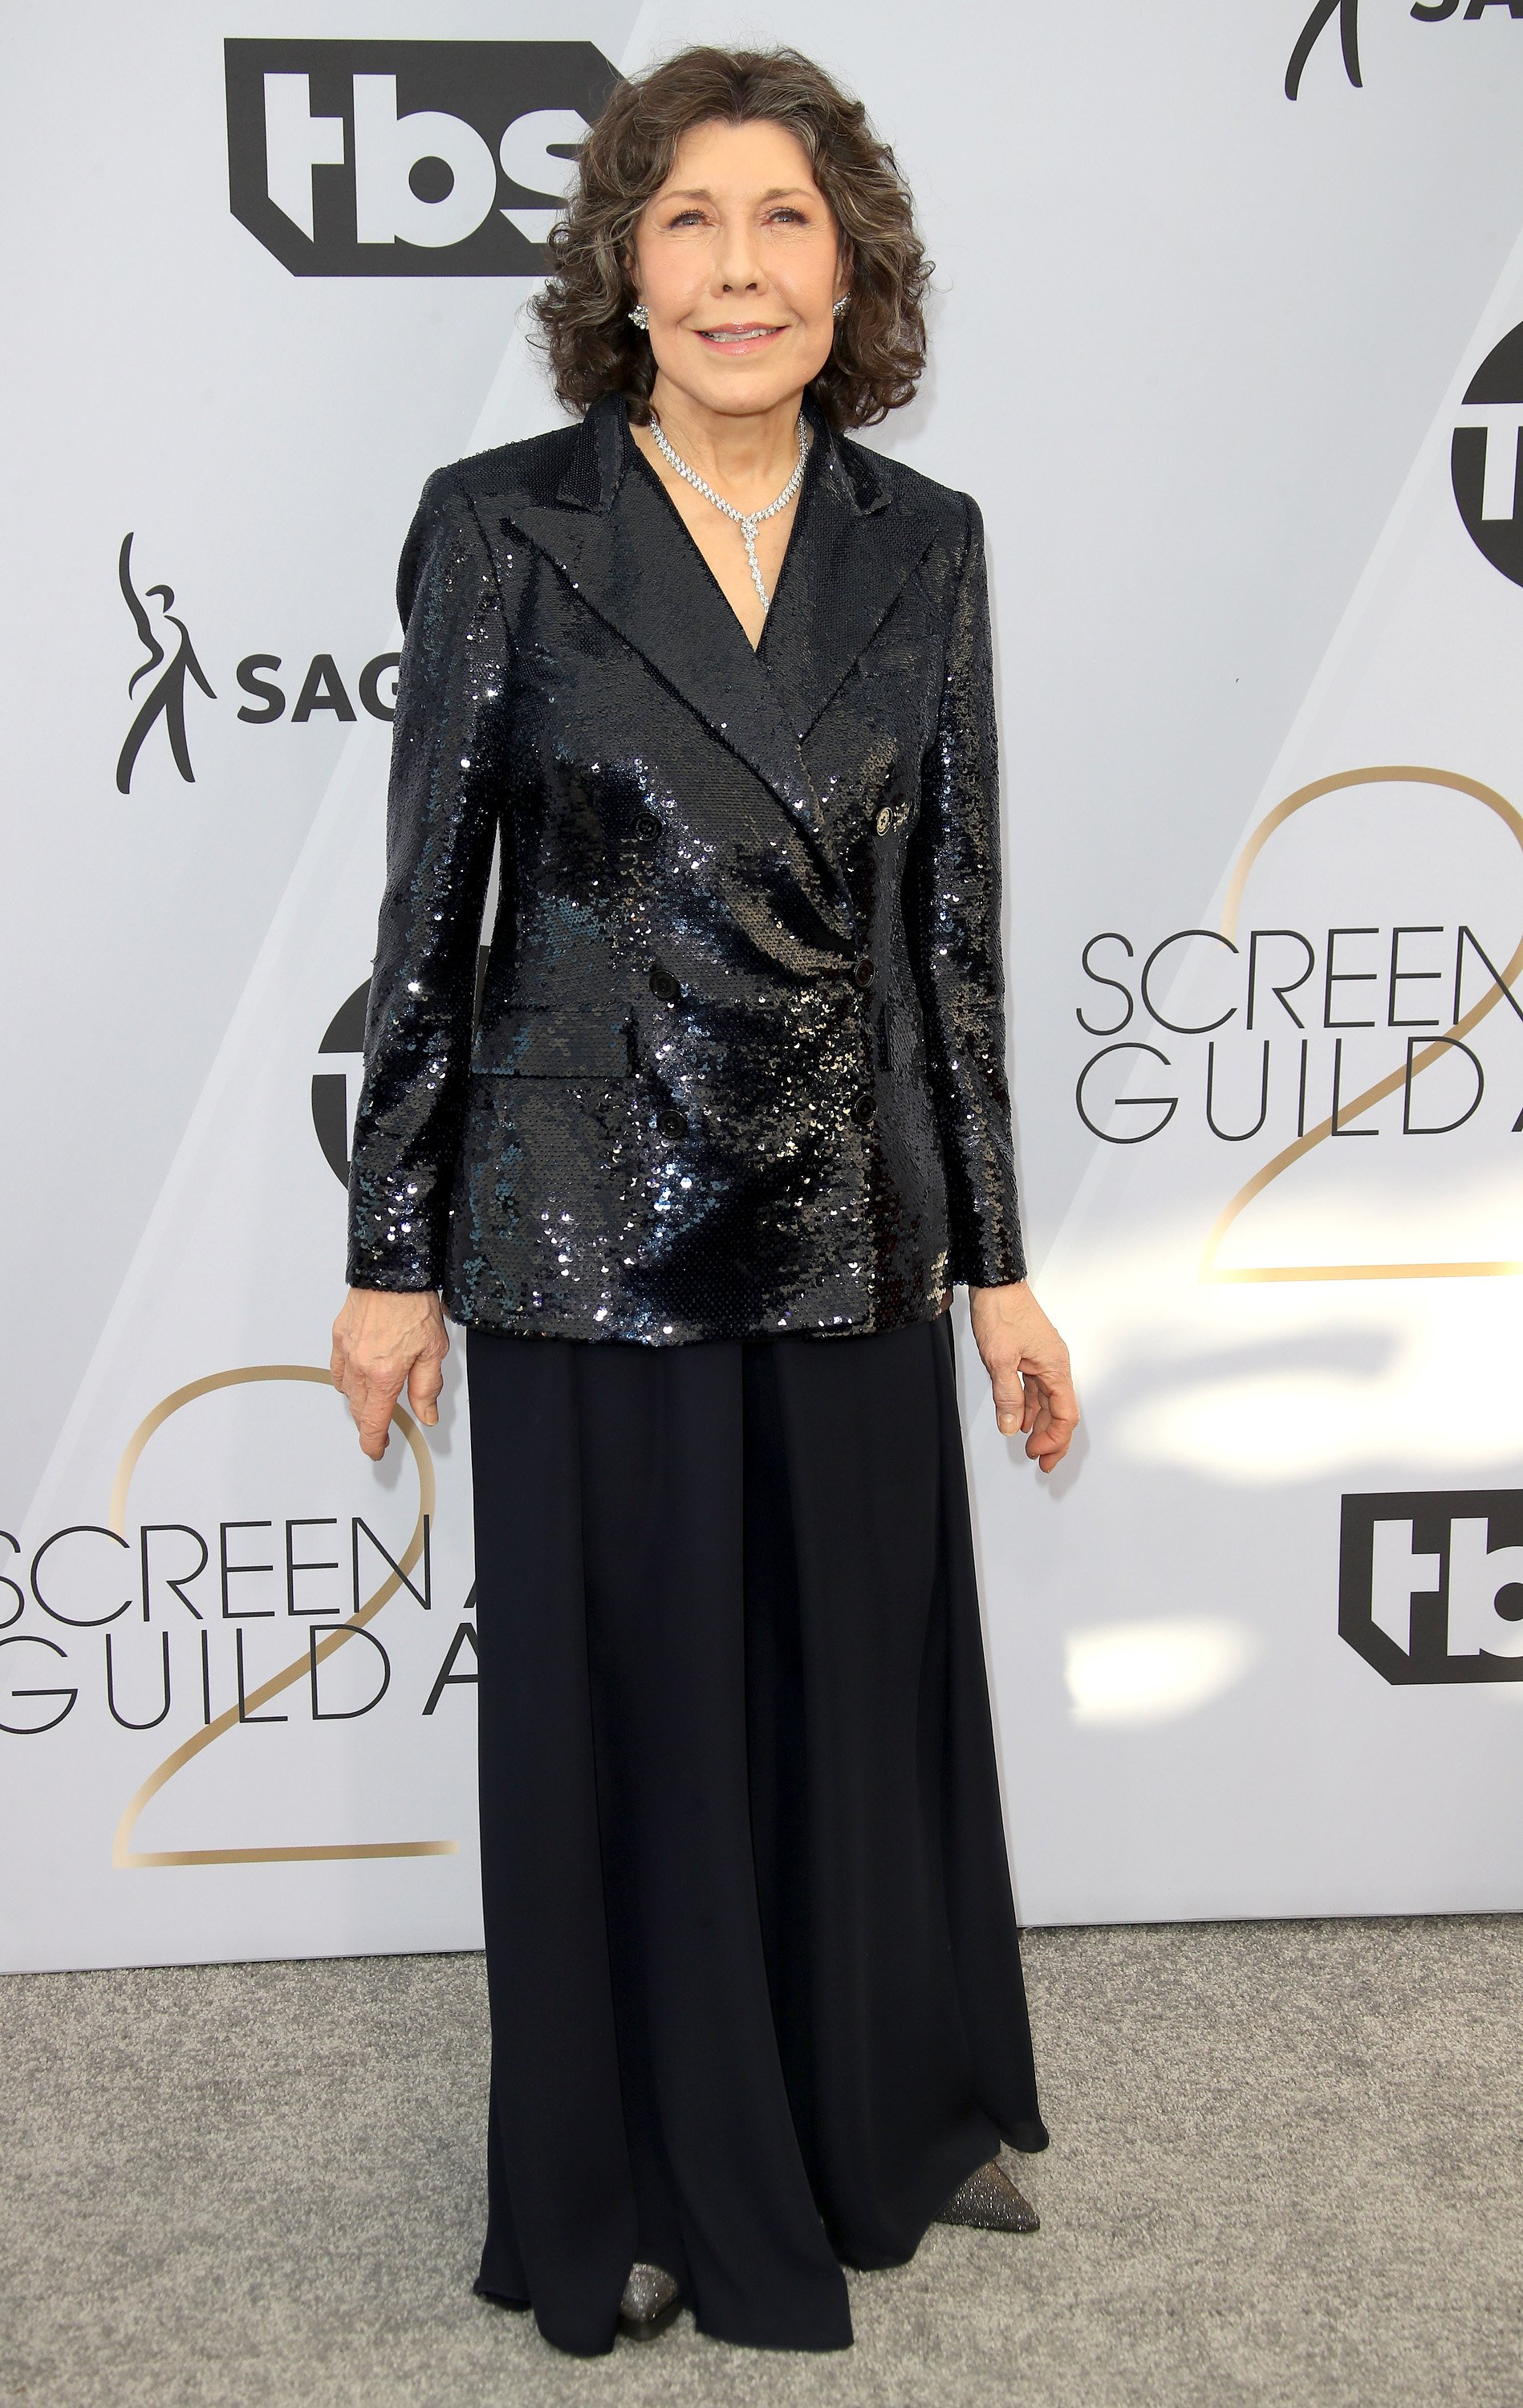 Lily Tomlin attends the 25th Annual Screen Actors Guild Awards at The Shrine Auditorium on January 27, 2019. | Source: Getty Images